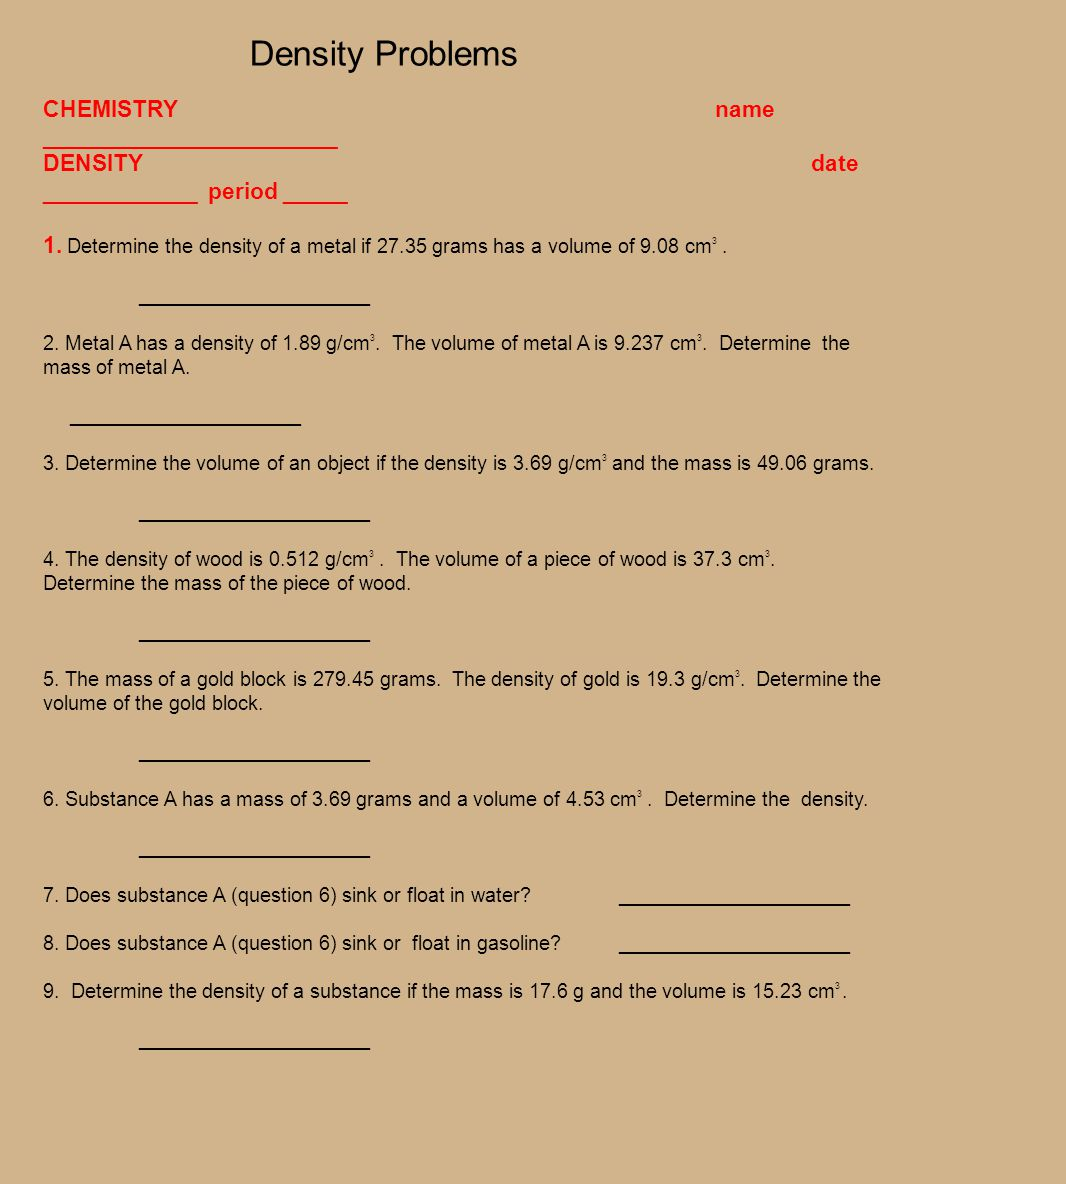 Unit 1 Worksheet 4 Applied Density Problems Answers duashadi – Density Problems Worksheet with Answers